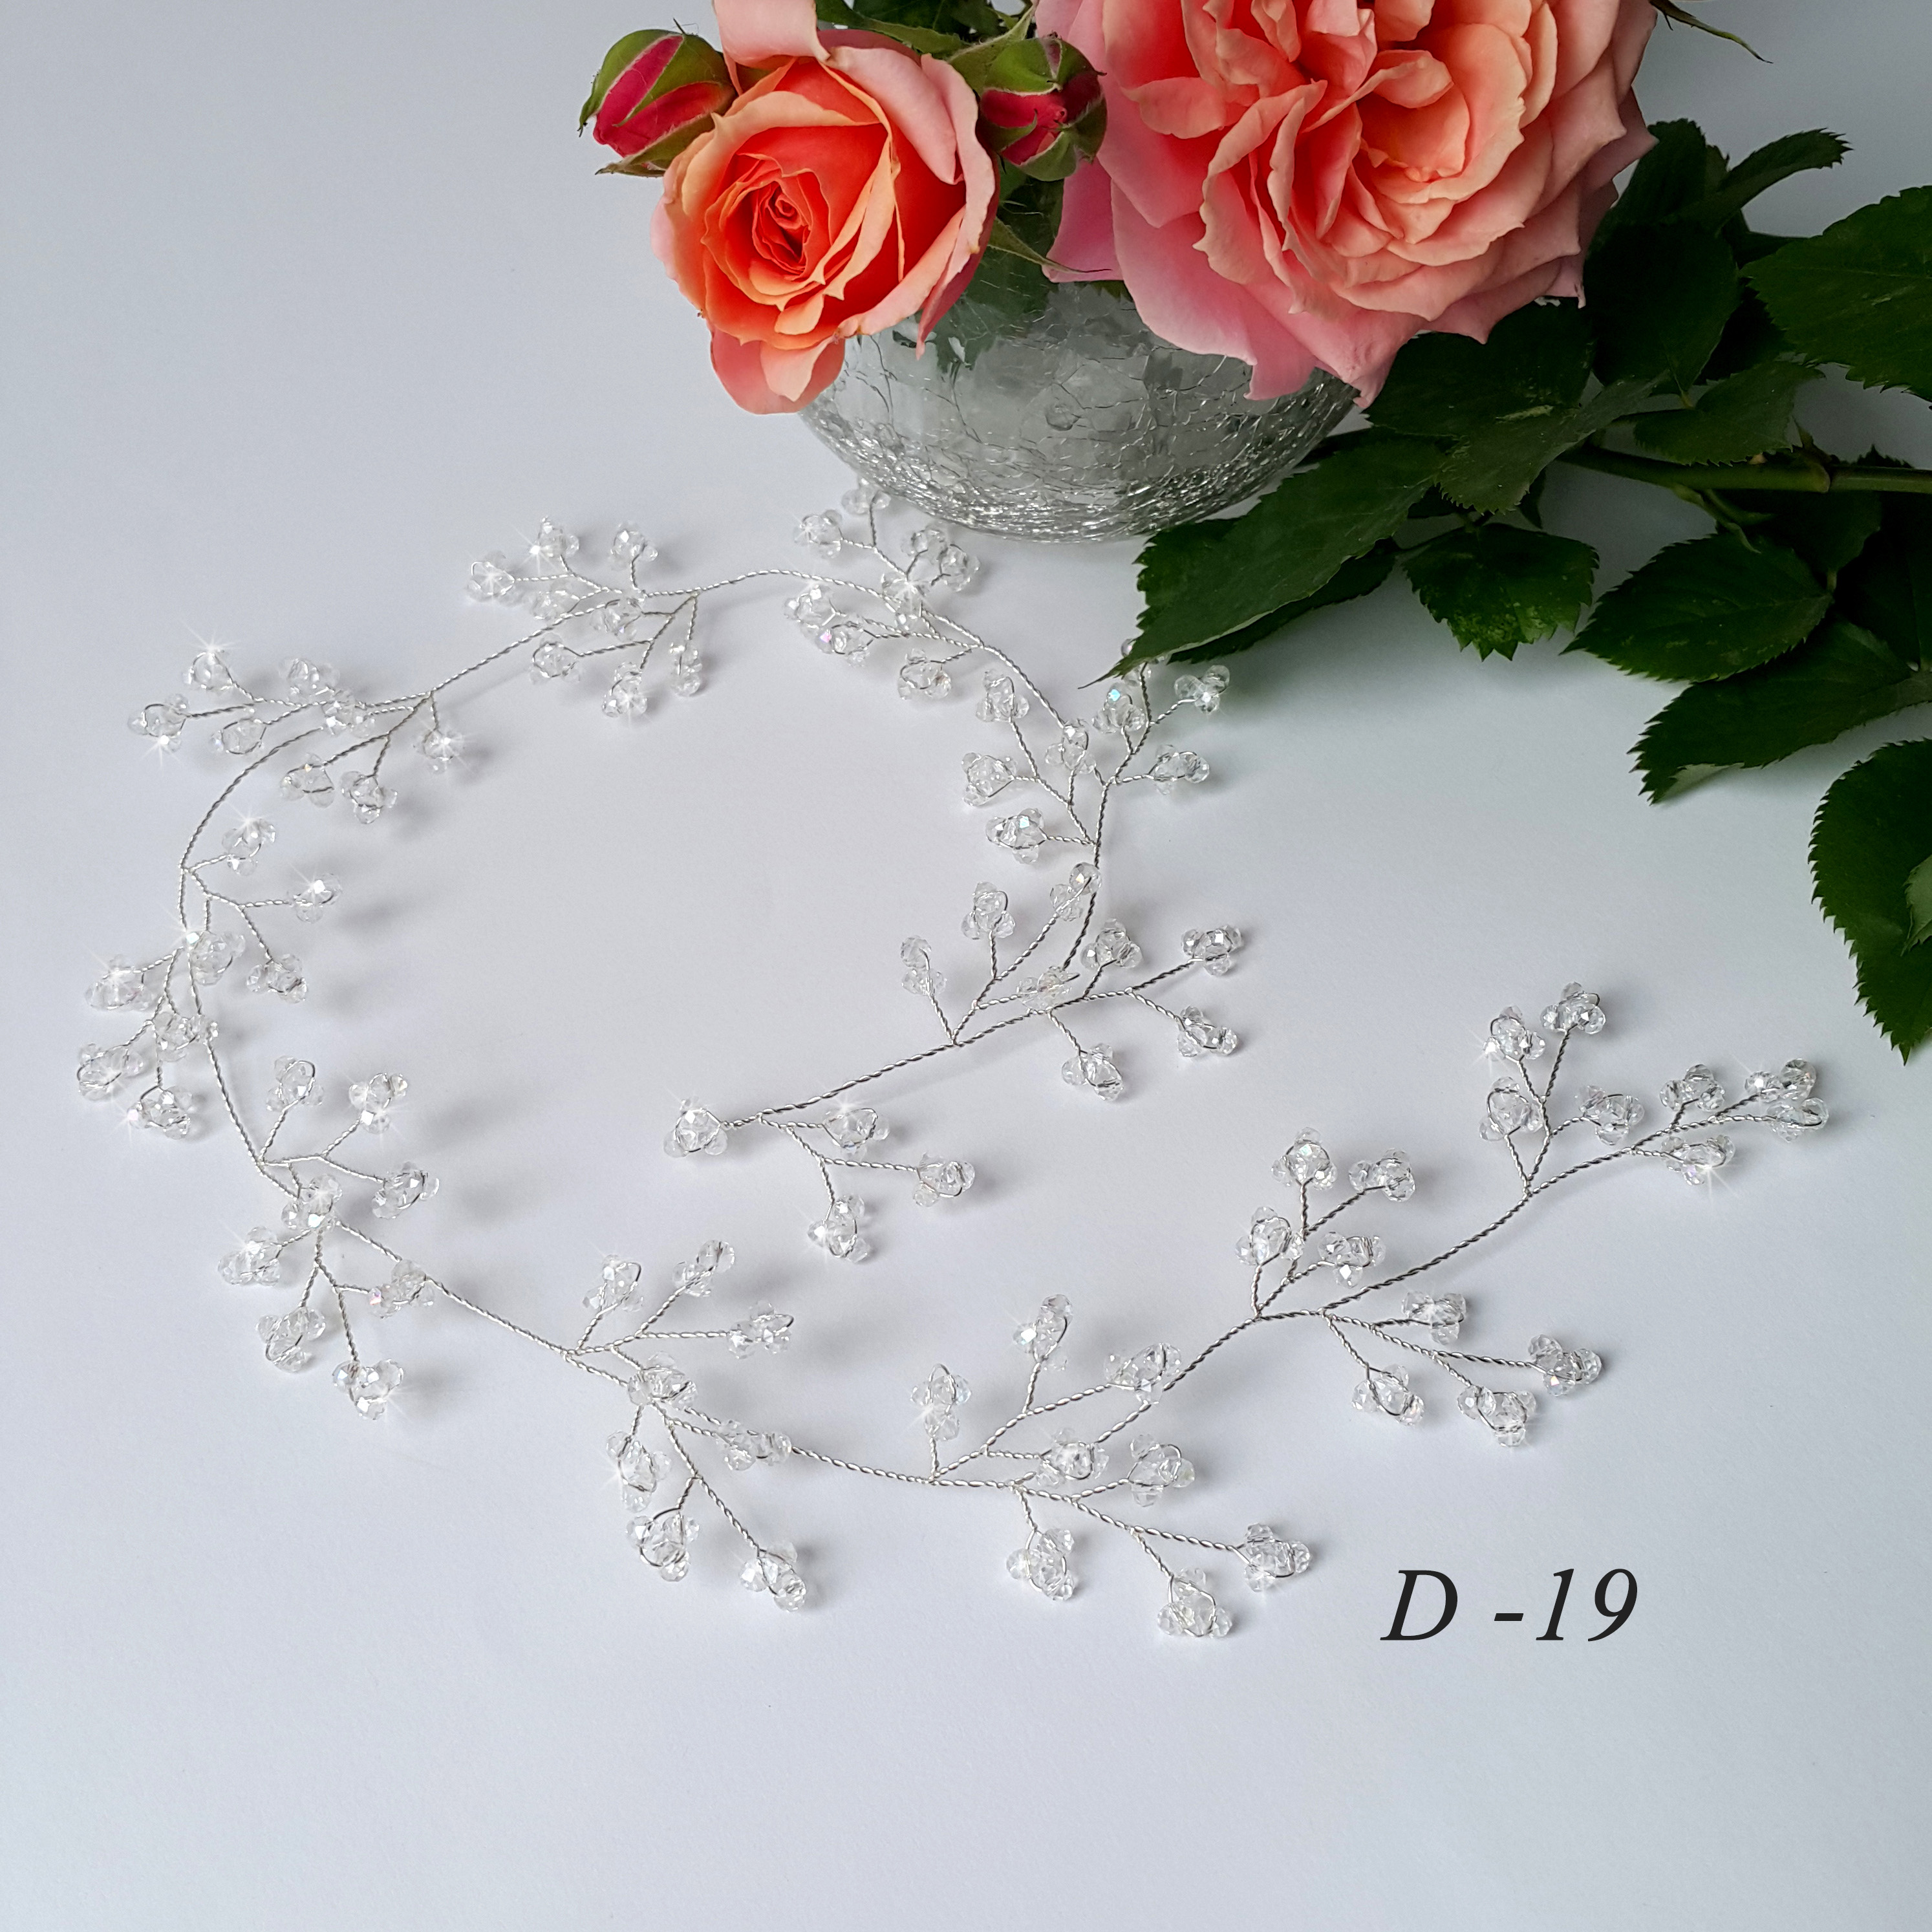 Accessory D 19 for the bride Foto 1